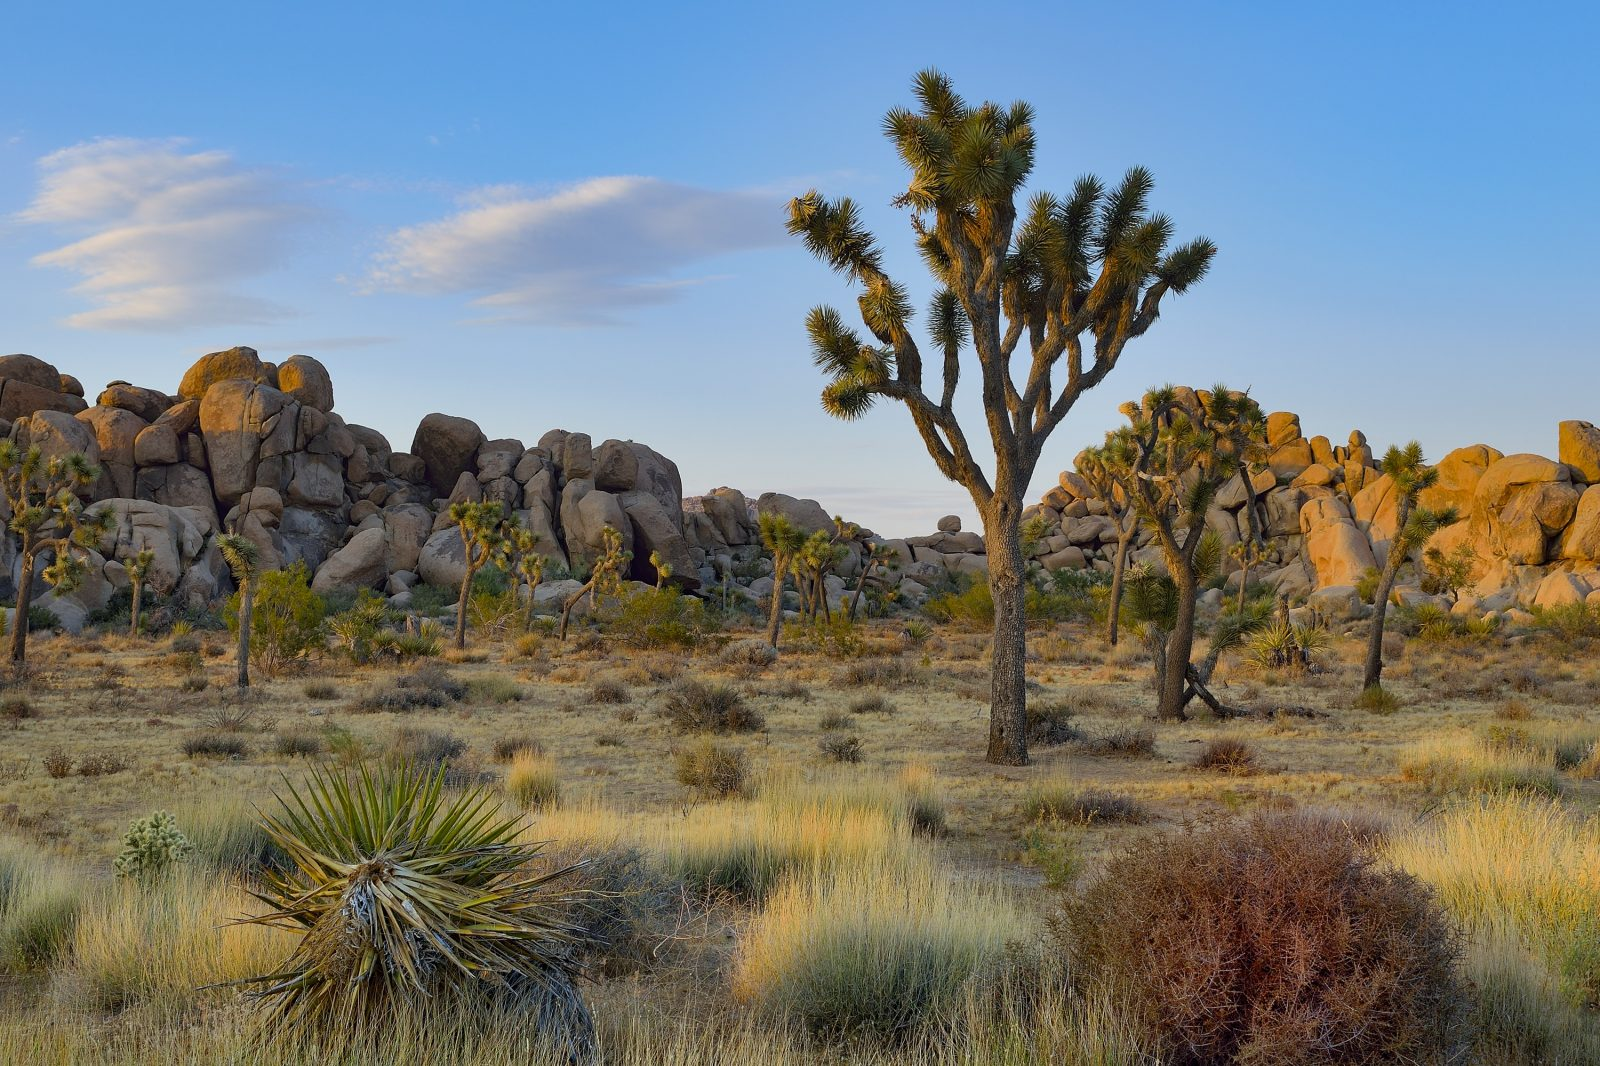 Sunset, Joshua Tree